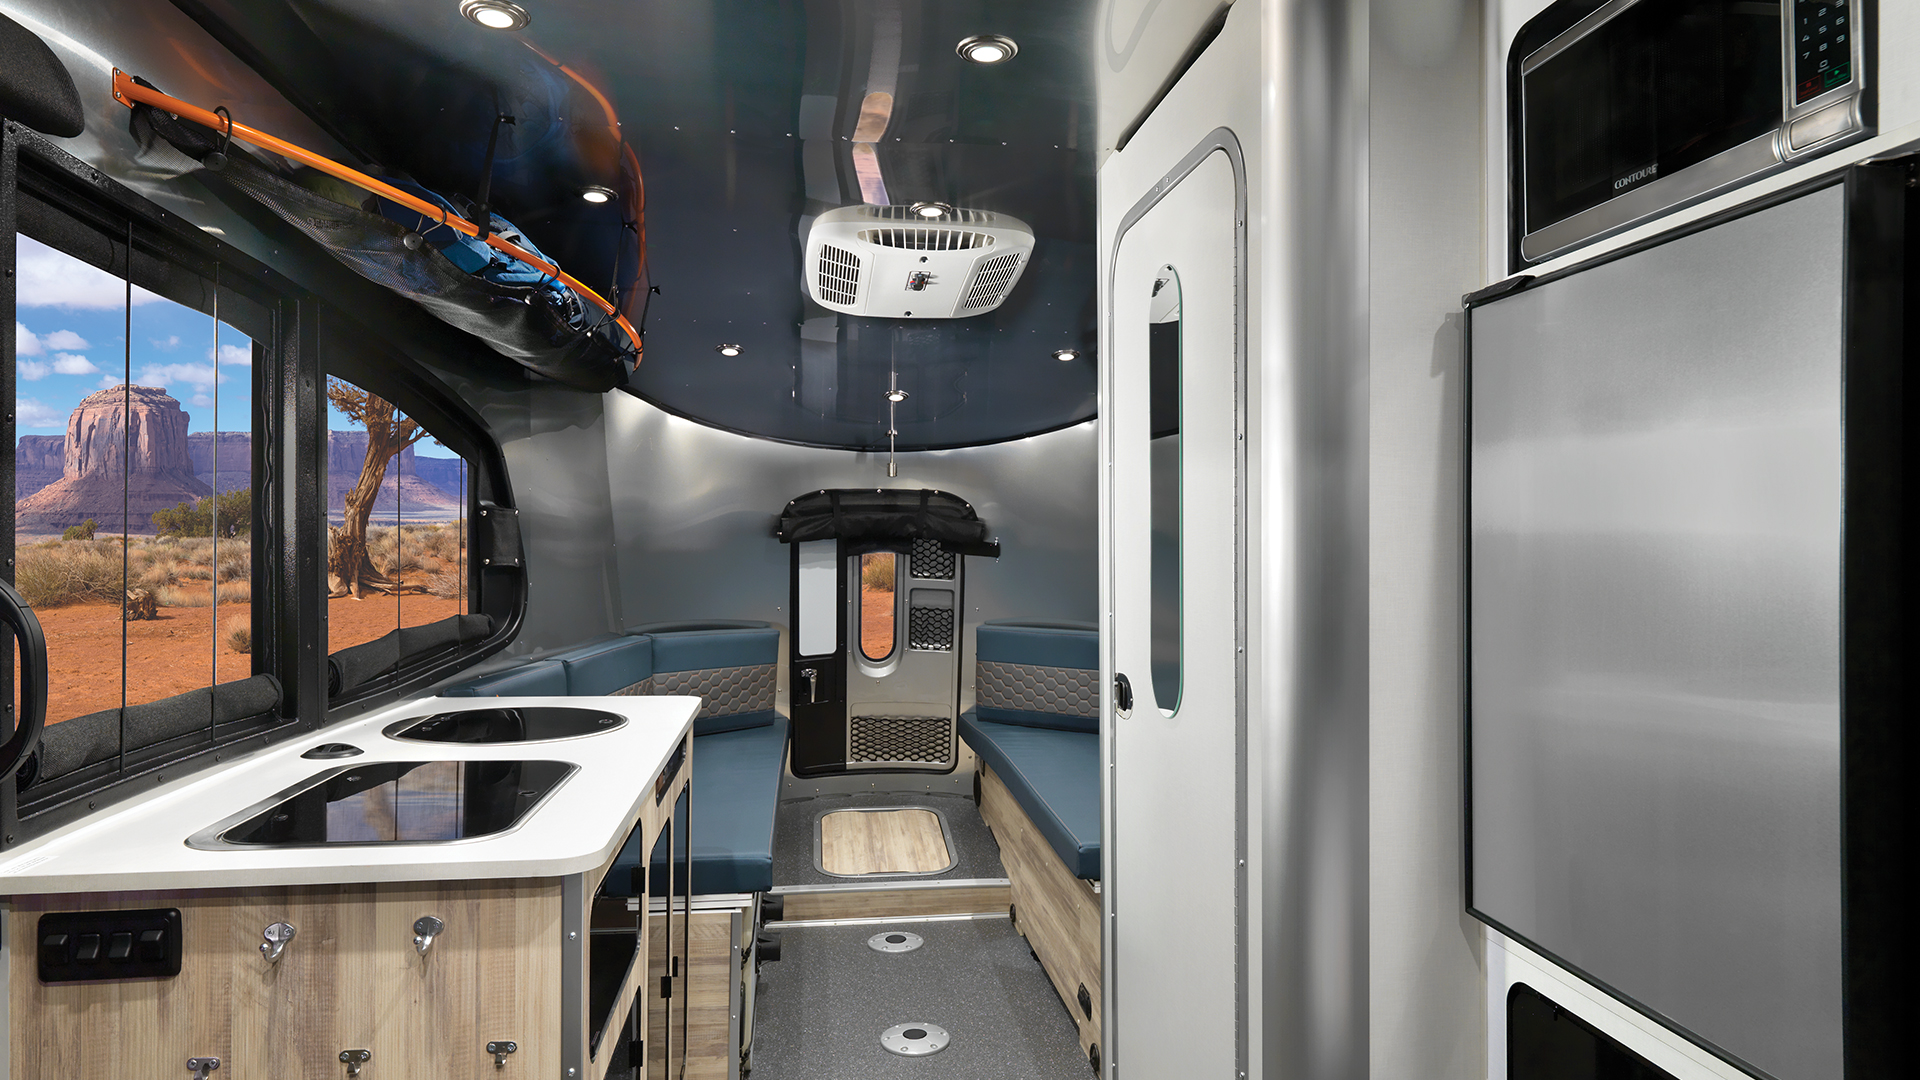 Airstream-Basecamp-20-Interior-Rear-with-Storage-Compartment-Visible